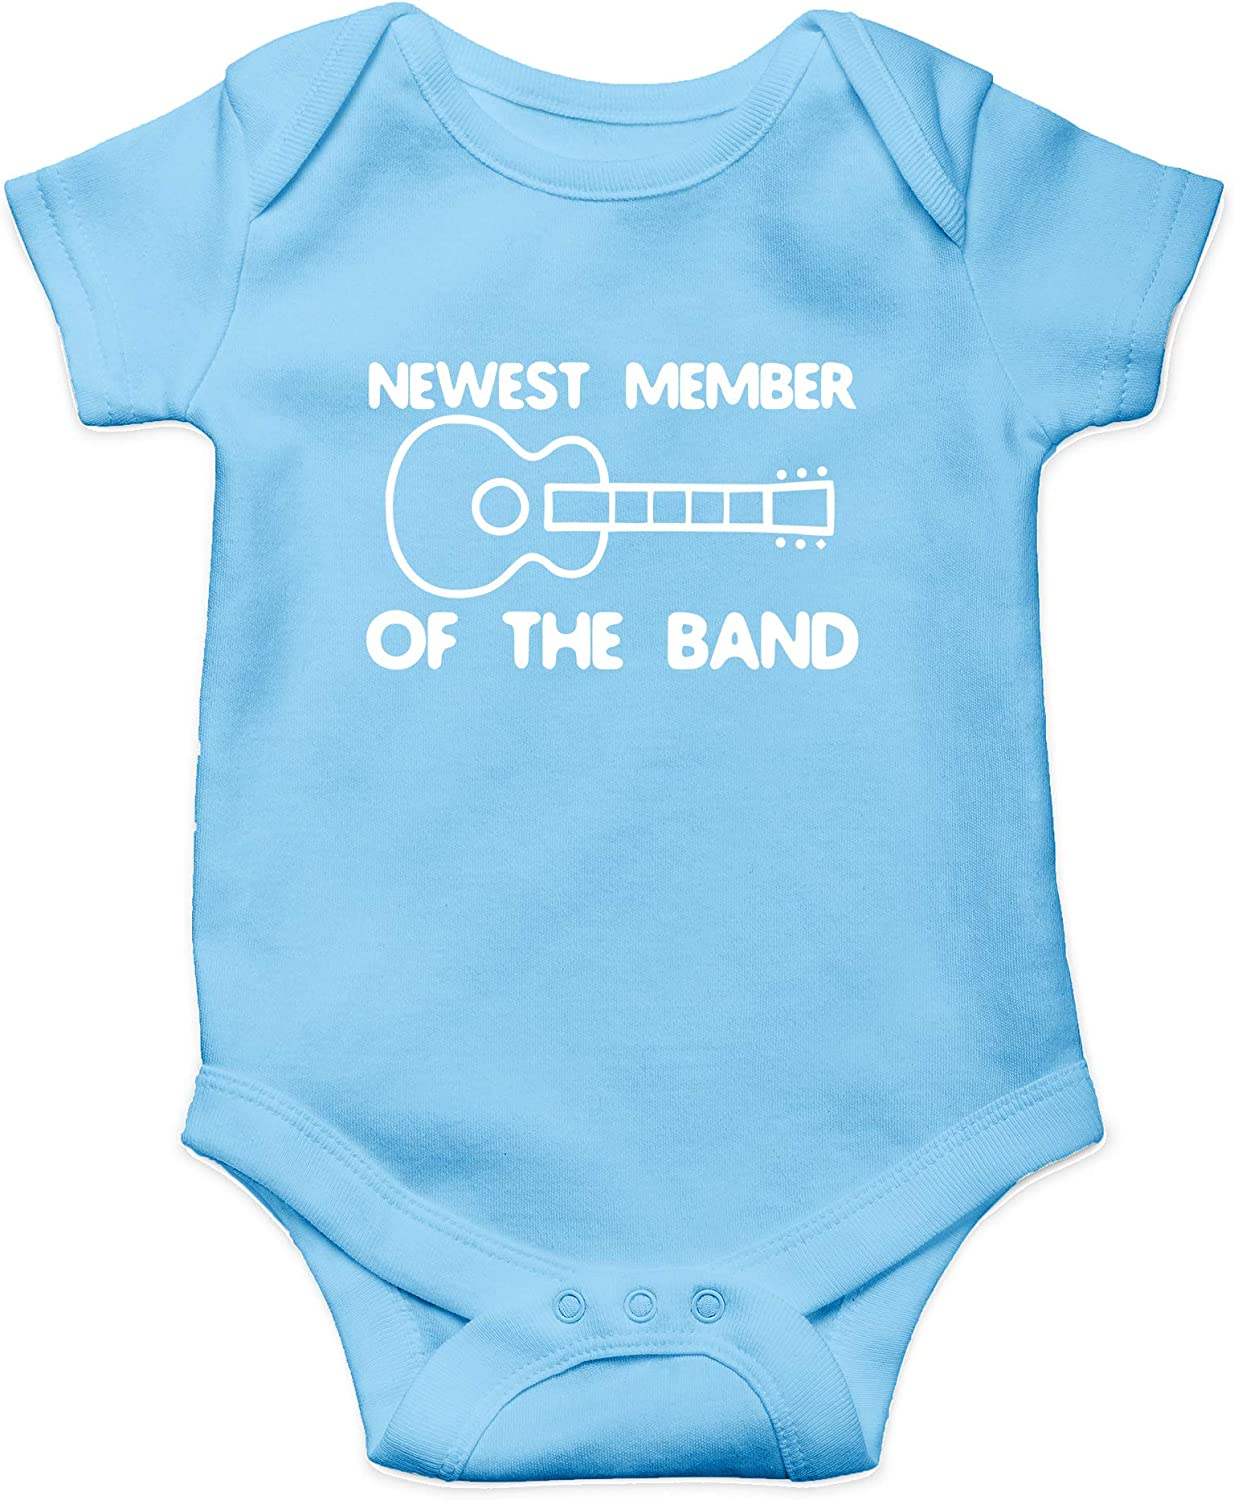 My uncle rocks neice or nephew gift baby bodysuit clothing guitar cool band girl or boy black size Newborn last one baby cloths